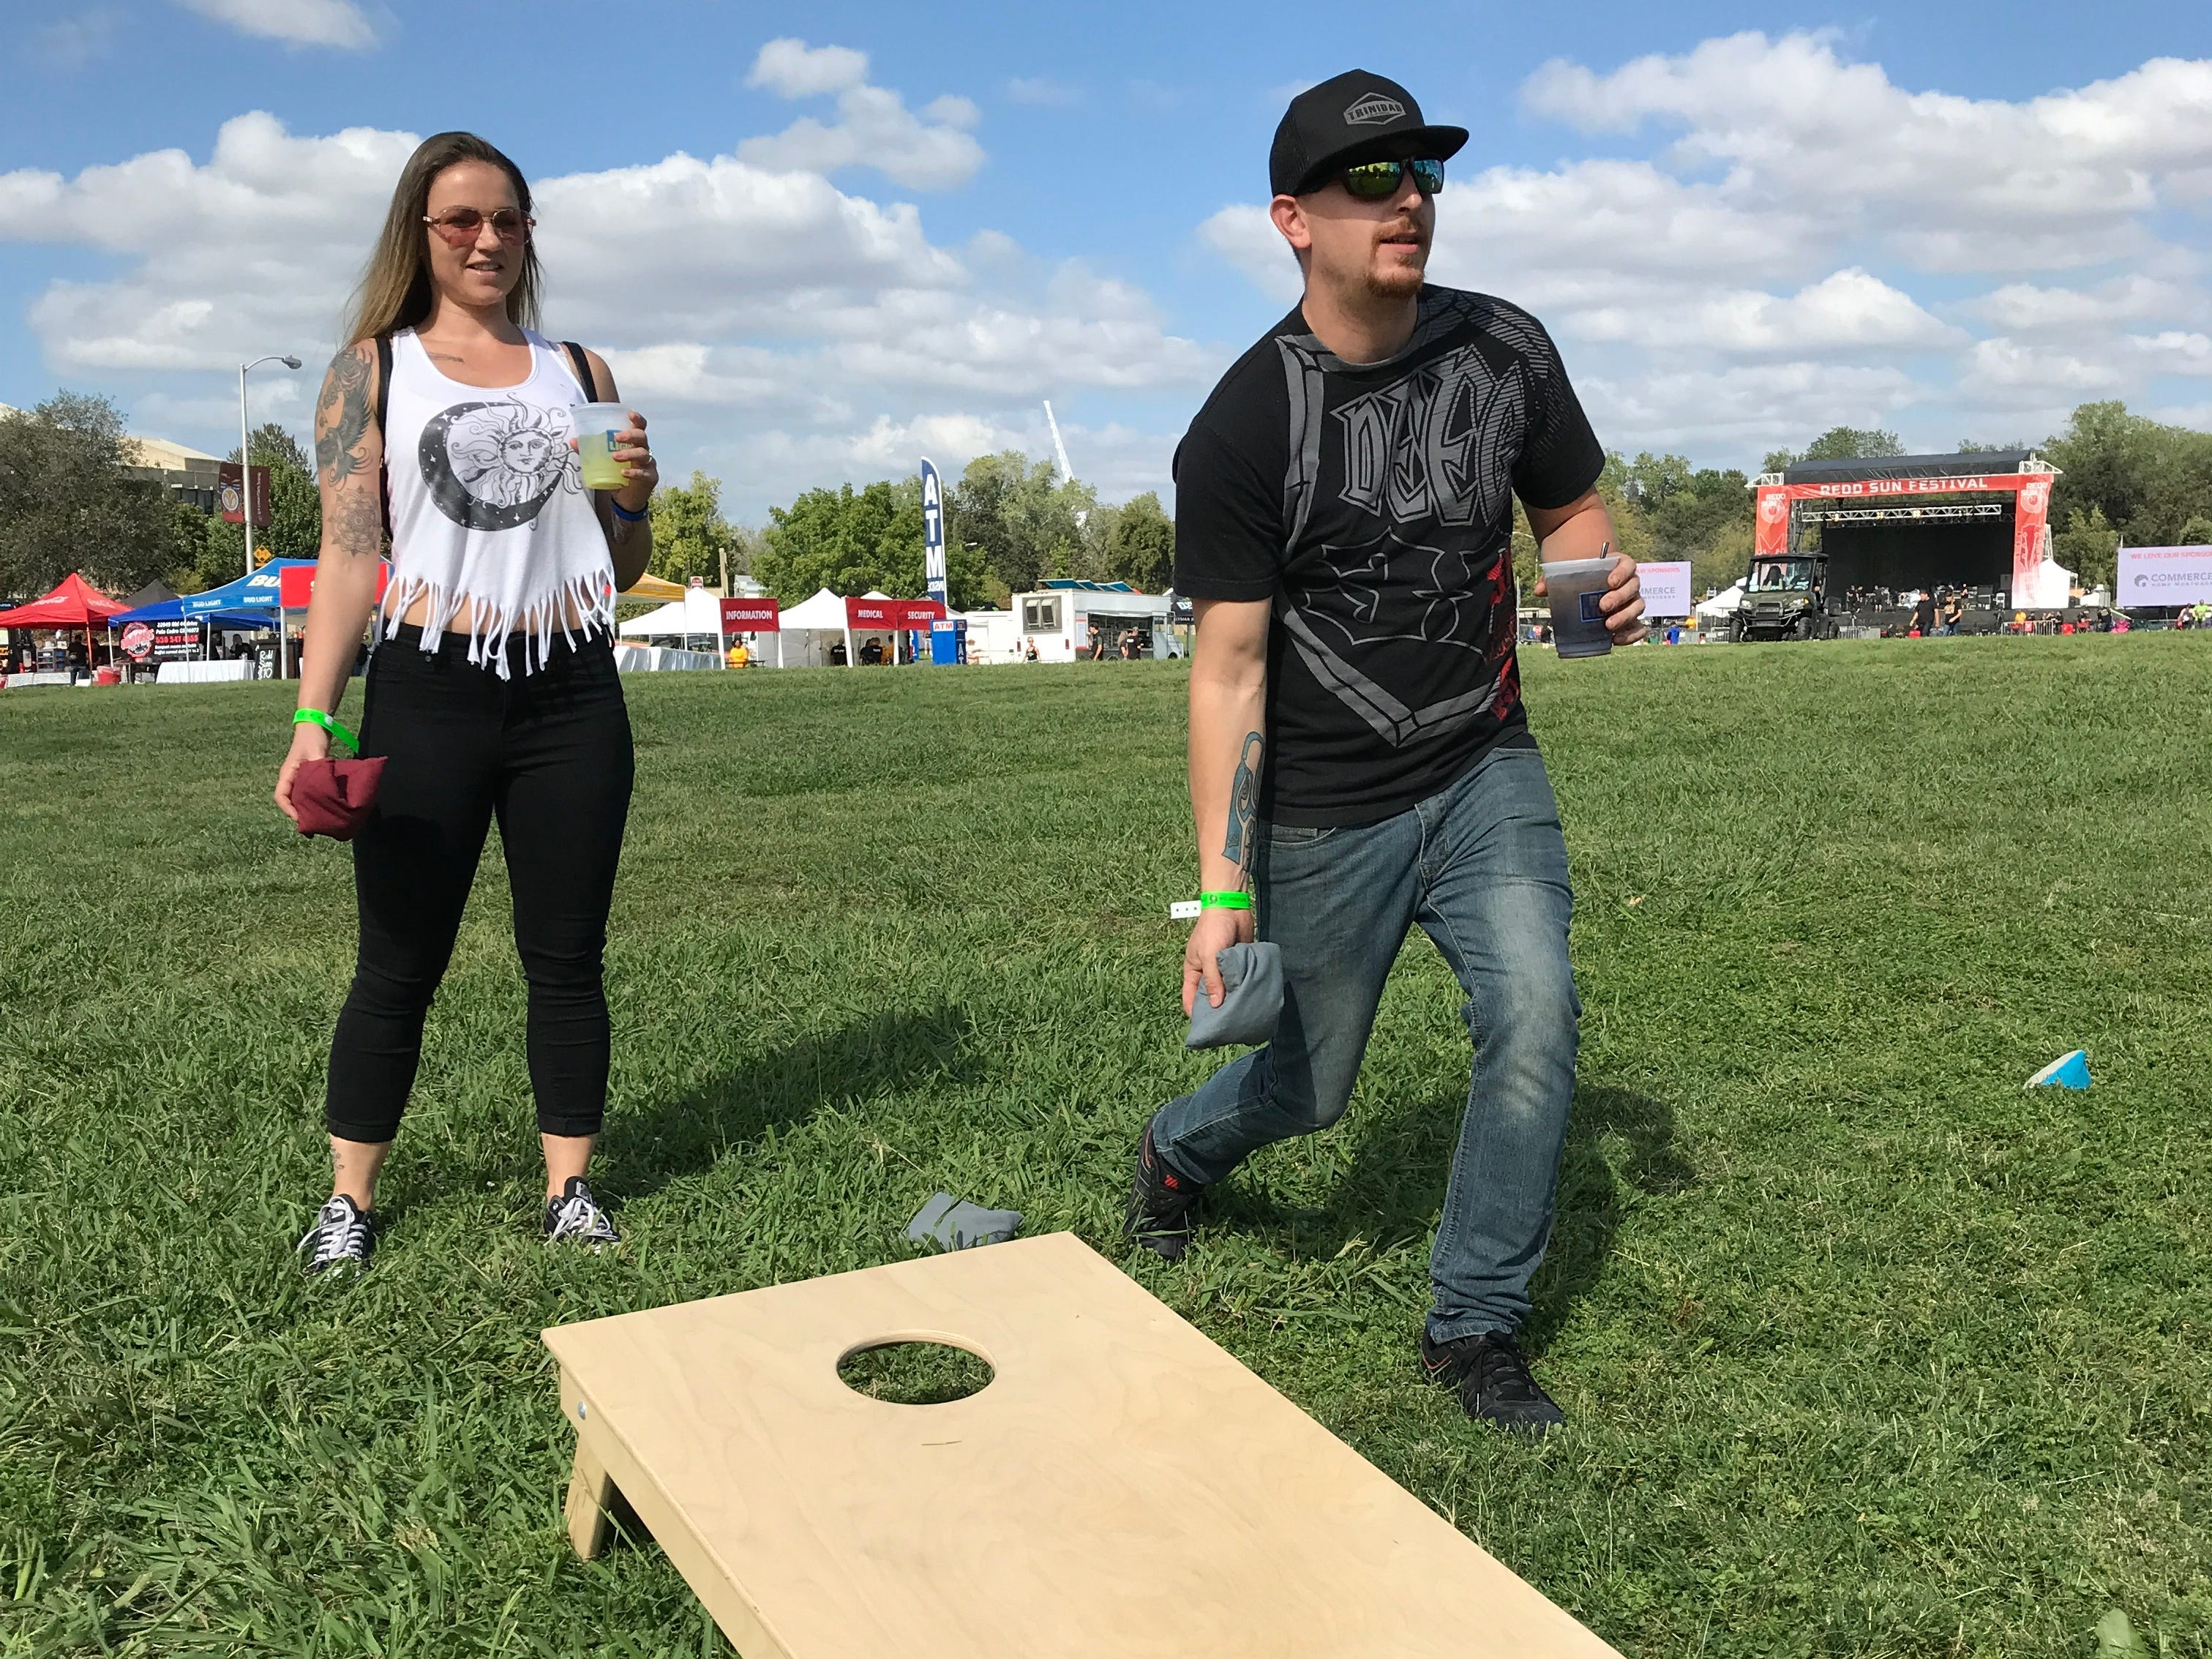 Rhiyah Rogers, left, watches Stephen Bull toss a bean bag in cornhole competition Saturday before the music started at the Redd Sun Festival at the Redding Civic Auditorium.